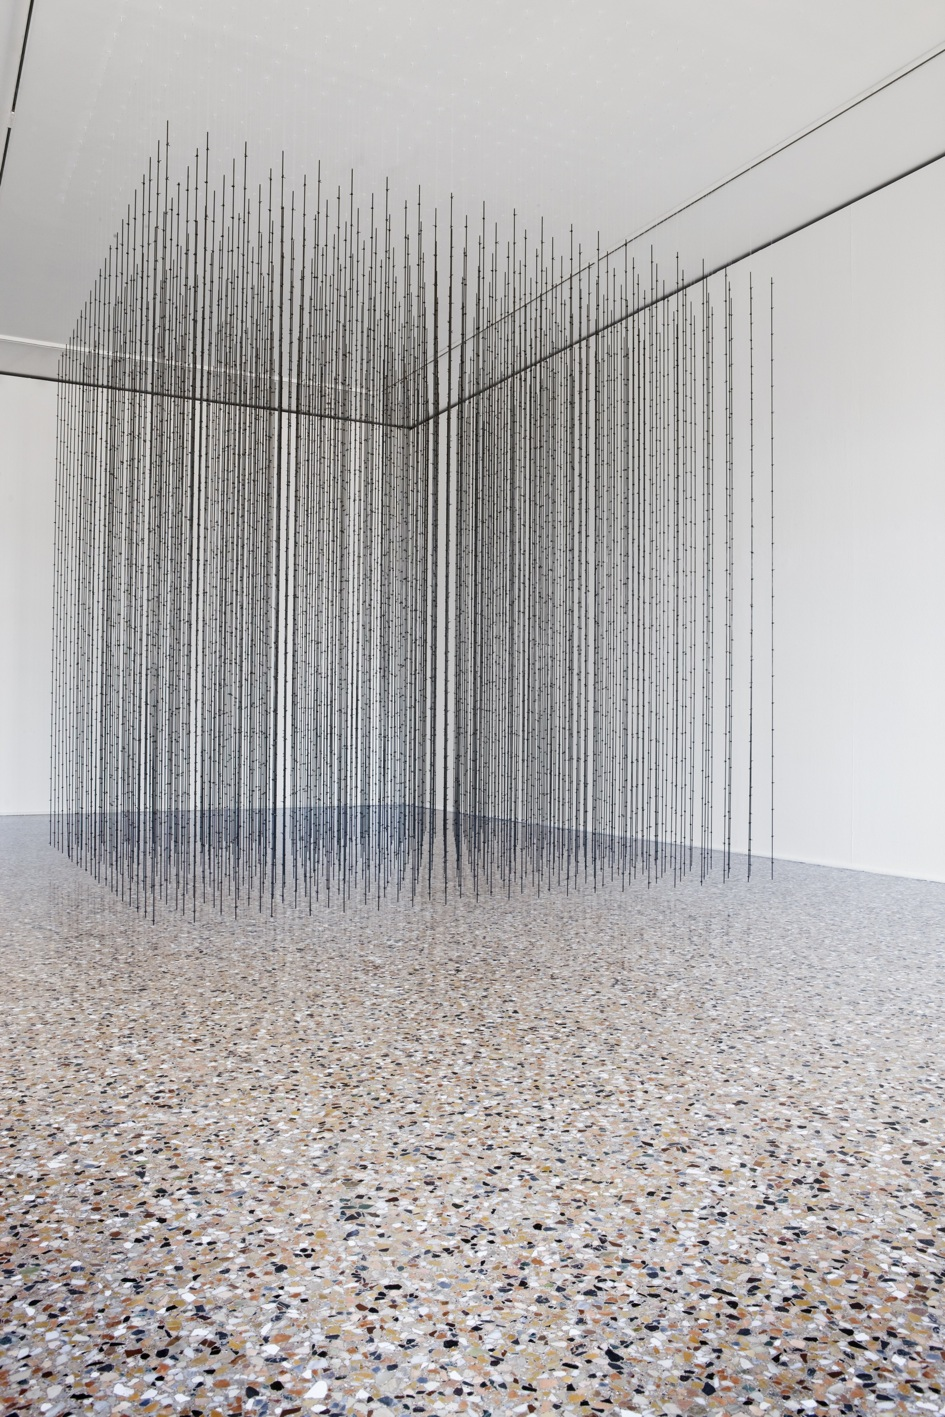 Mona Hatoum, Impenetrable